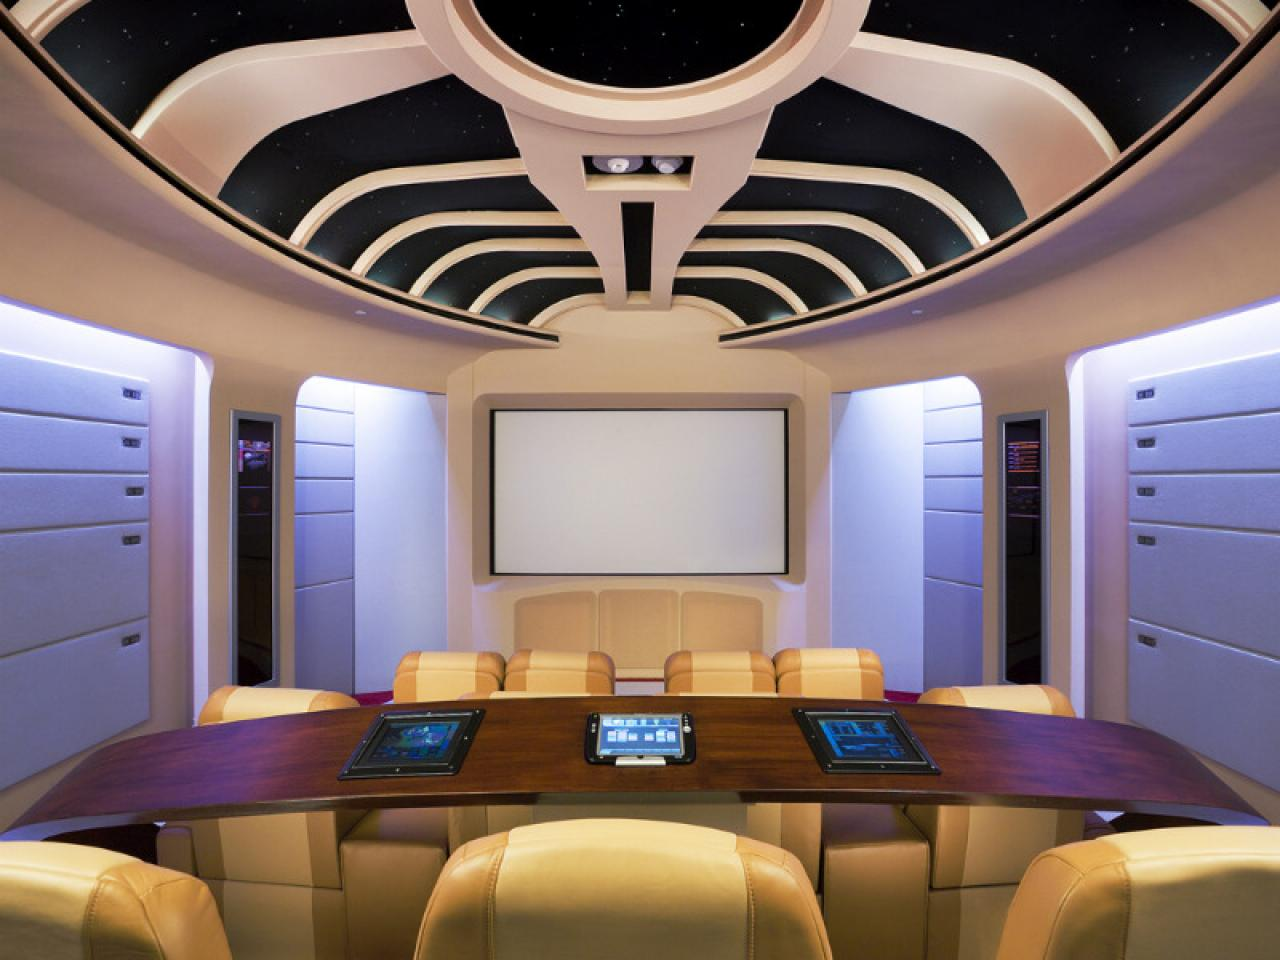 Home theater carpet ideas pictures options expert tips hgtv Home cinema interior design ideas